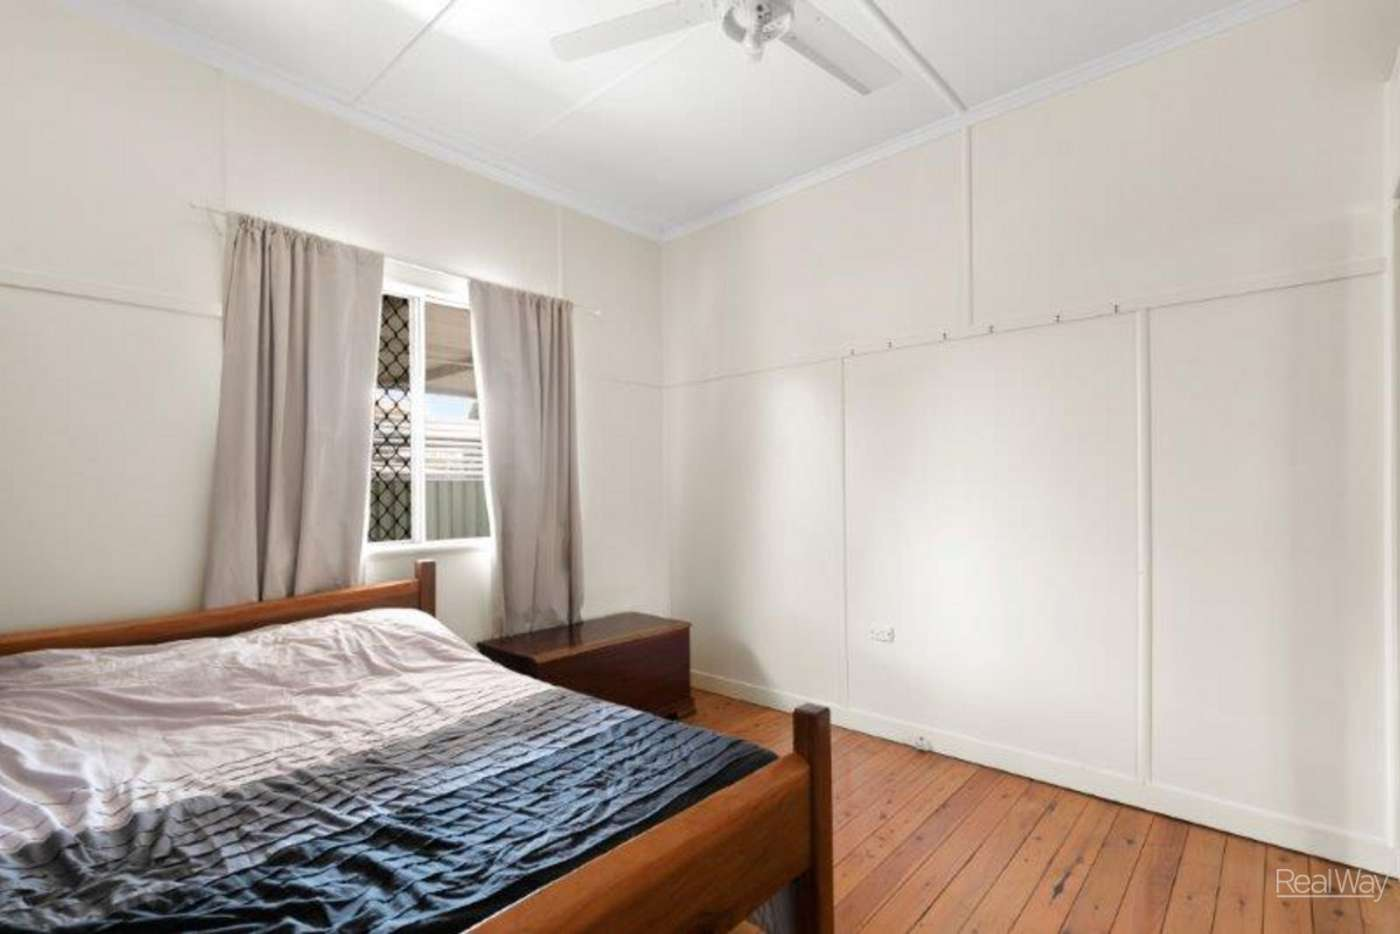 Sixth view of Homely house listing, 12 Power Street, Harristown QLD 4350